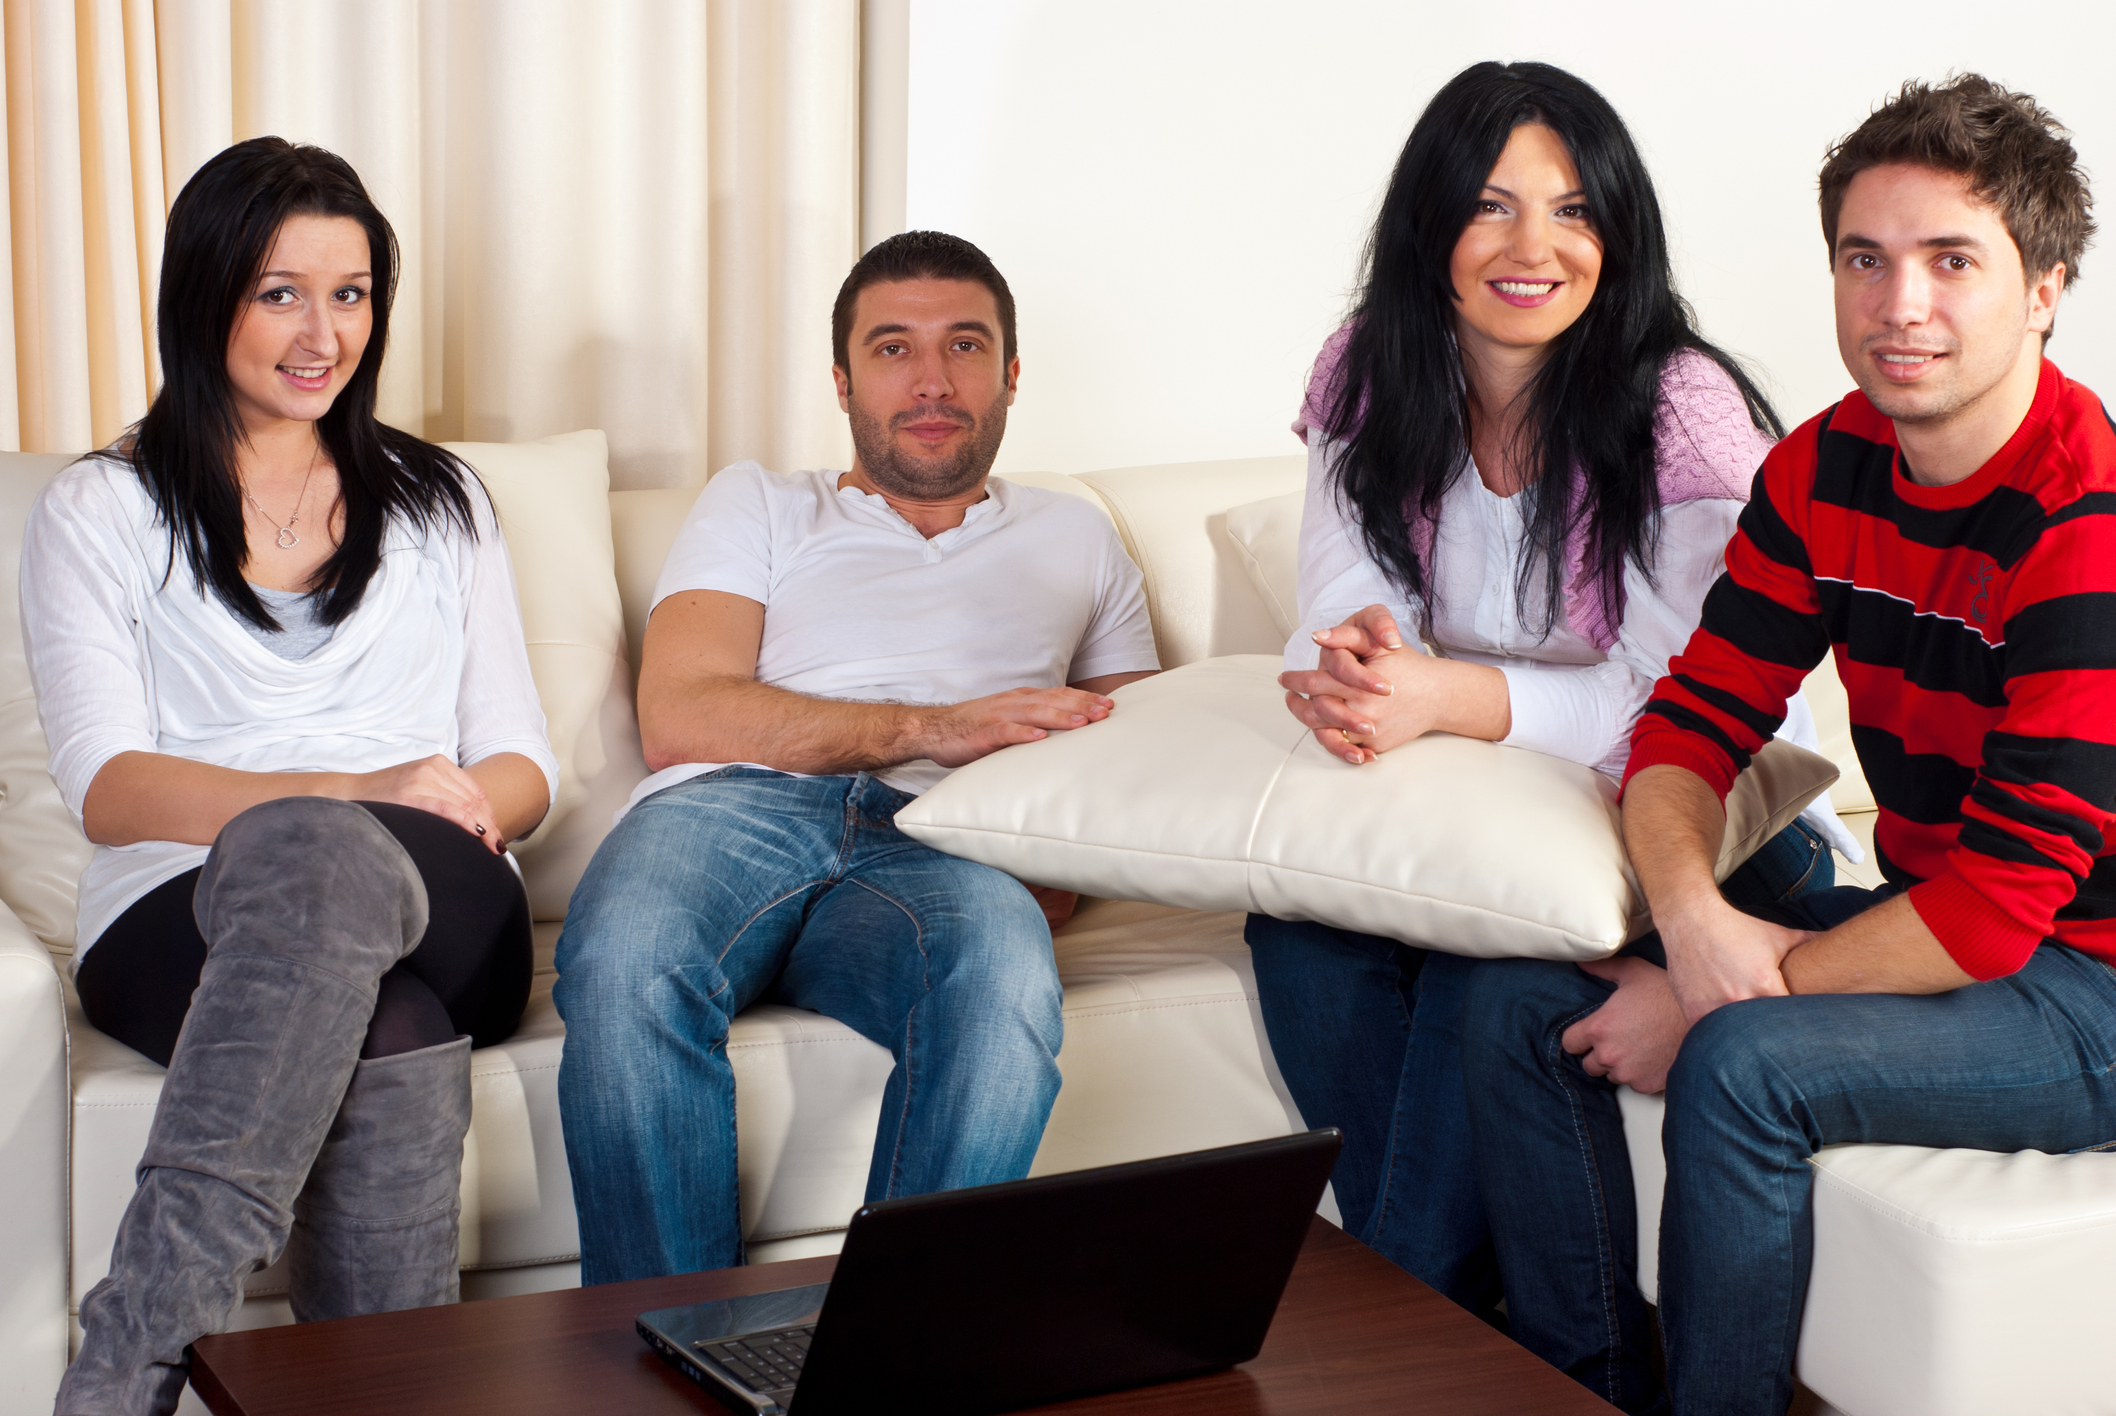 Family Matters When It Comes to Addiction Recovery